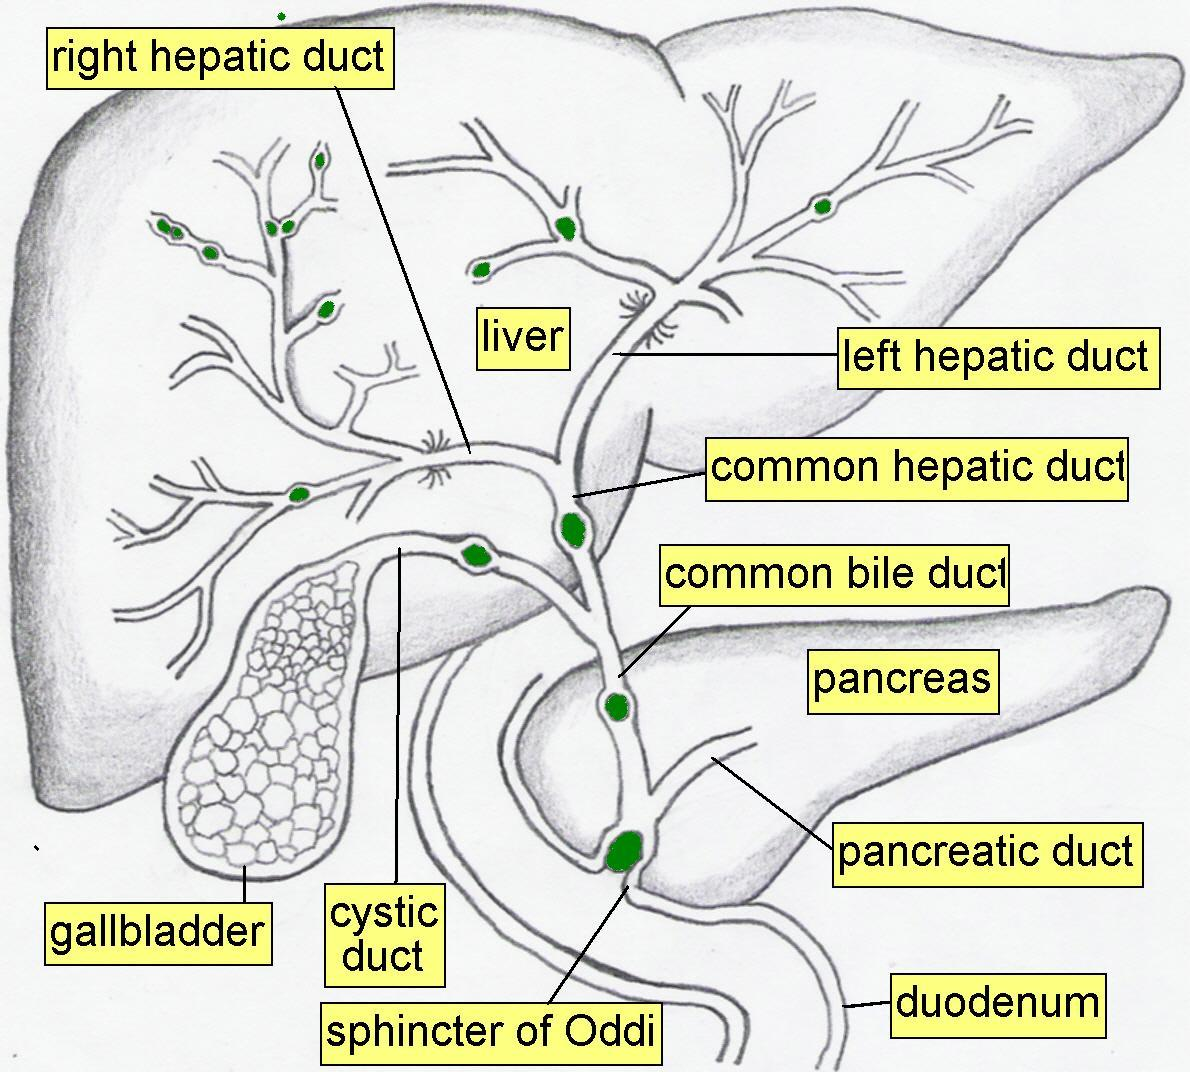 Intrahepatic bile ducts